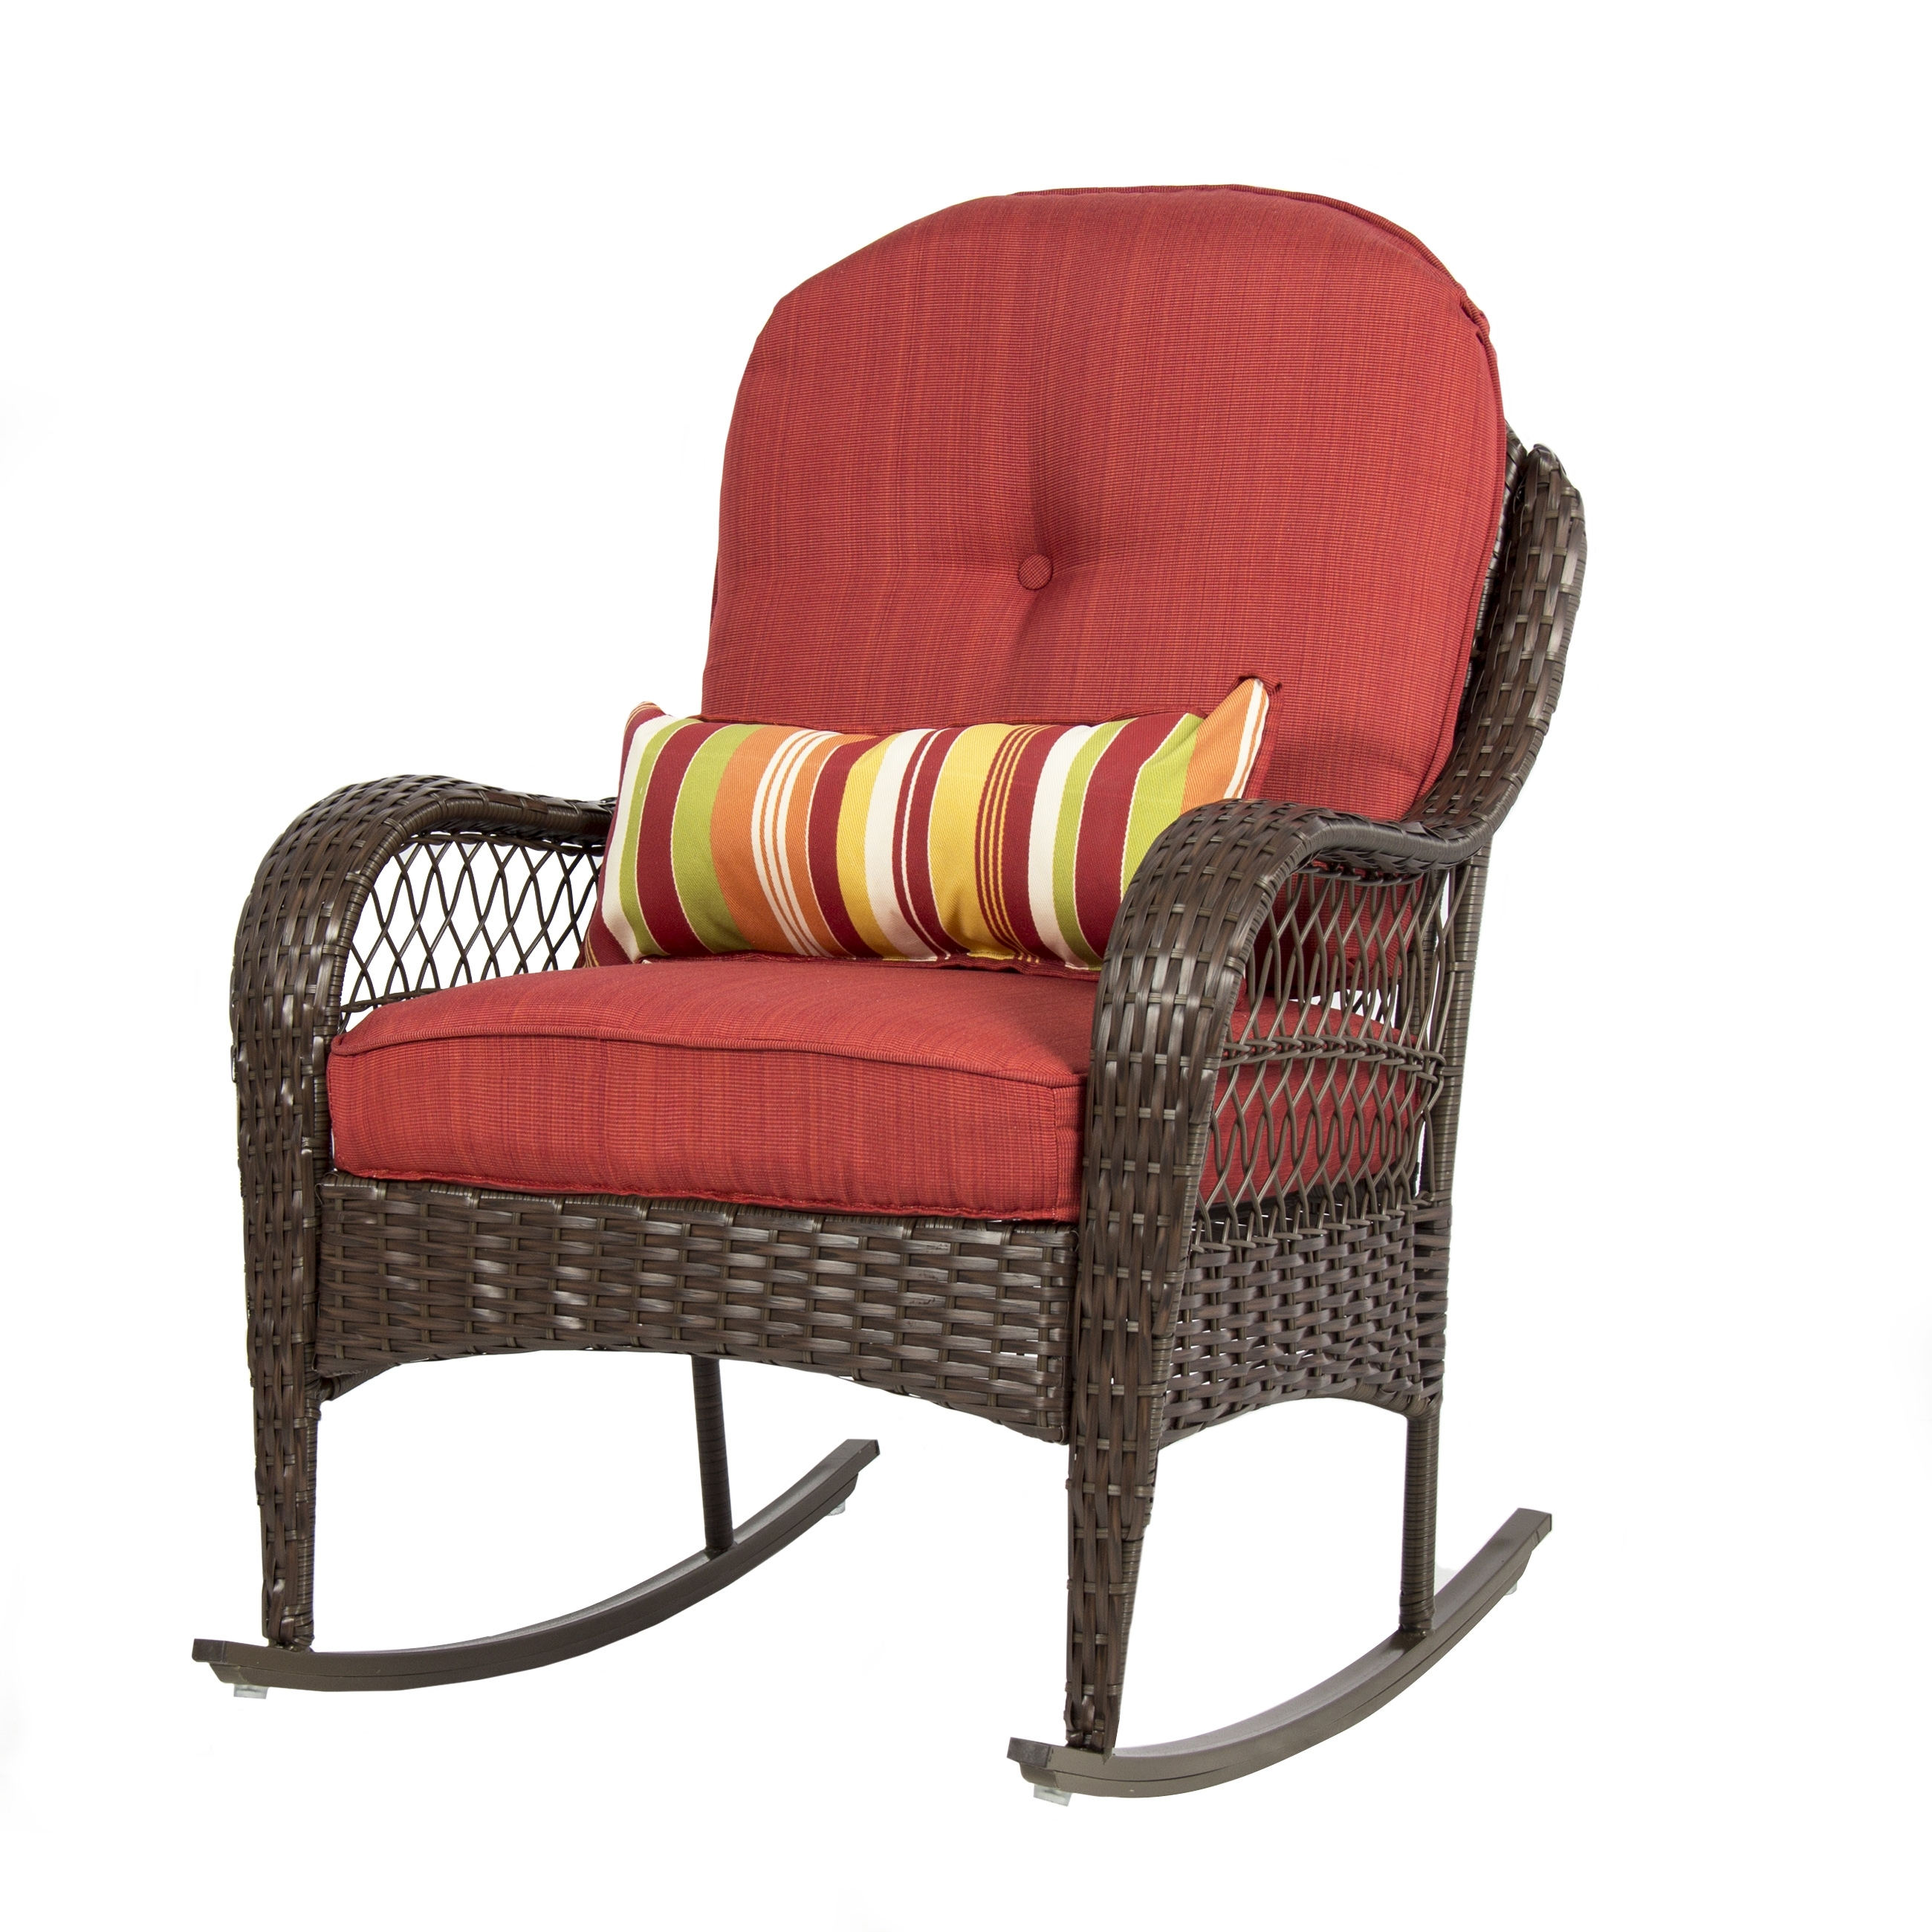 Best Choice Products Wicker Rocking Chair Patio Porch Deck Furniture Throughout Well Known Rocking Chairs At Walmart (View 2 of 15)